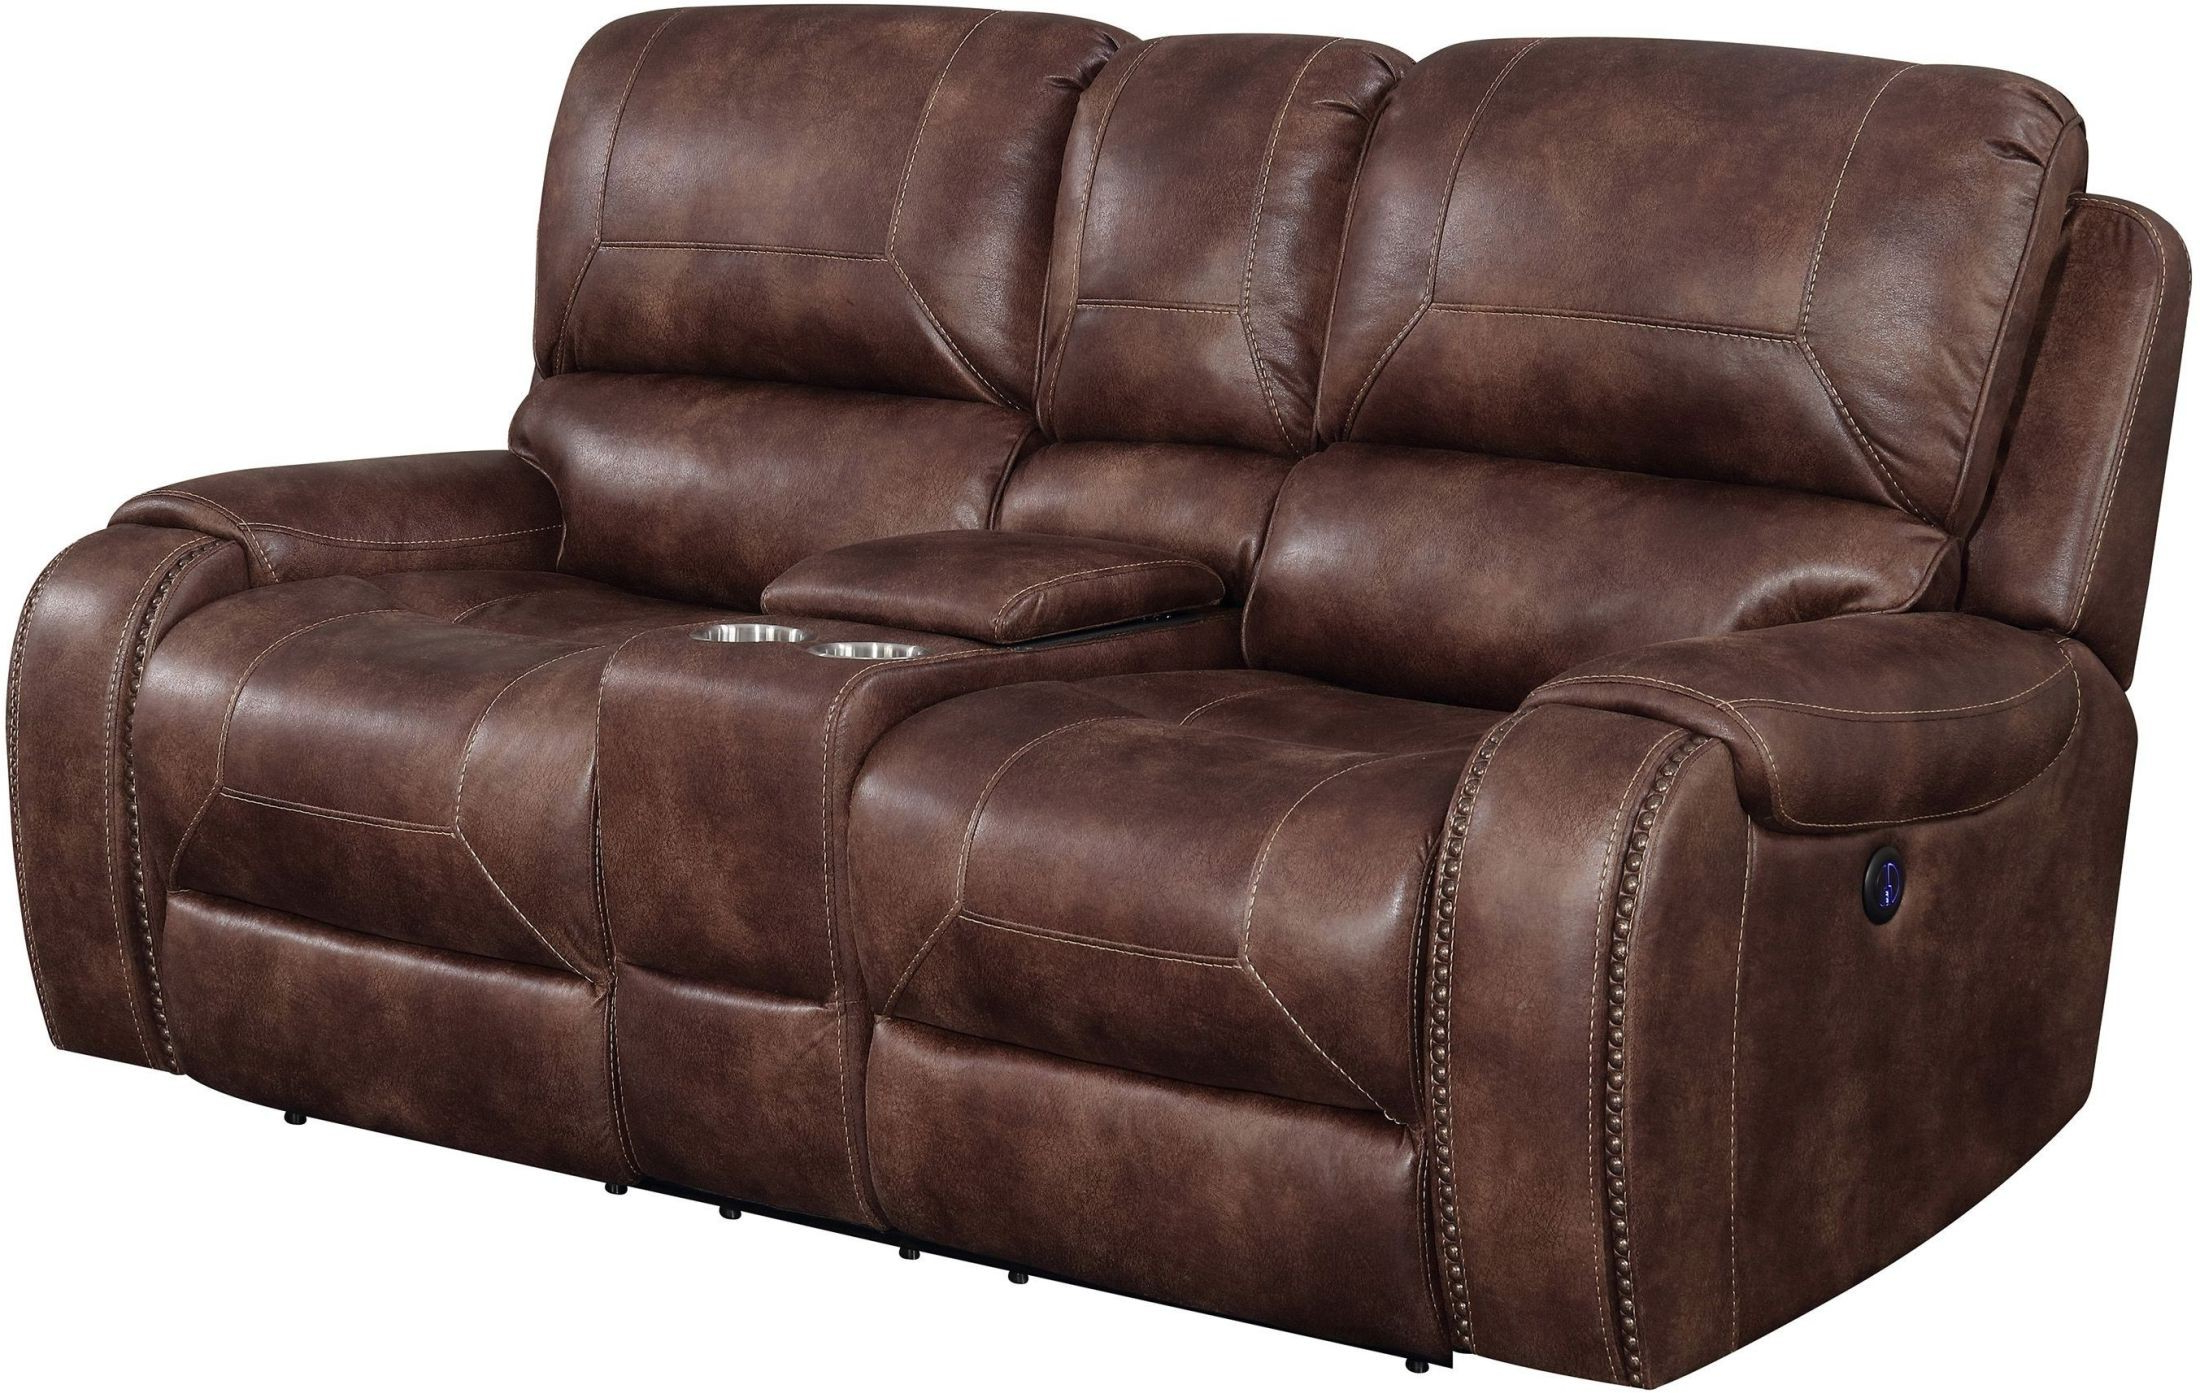 Jennings Waylon Mocha Power Reclining Console Loveseat From Prime With Most Current Waylon 3 Piece Power Reclining Sectionals (View 9 of 20)